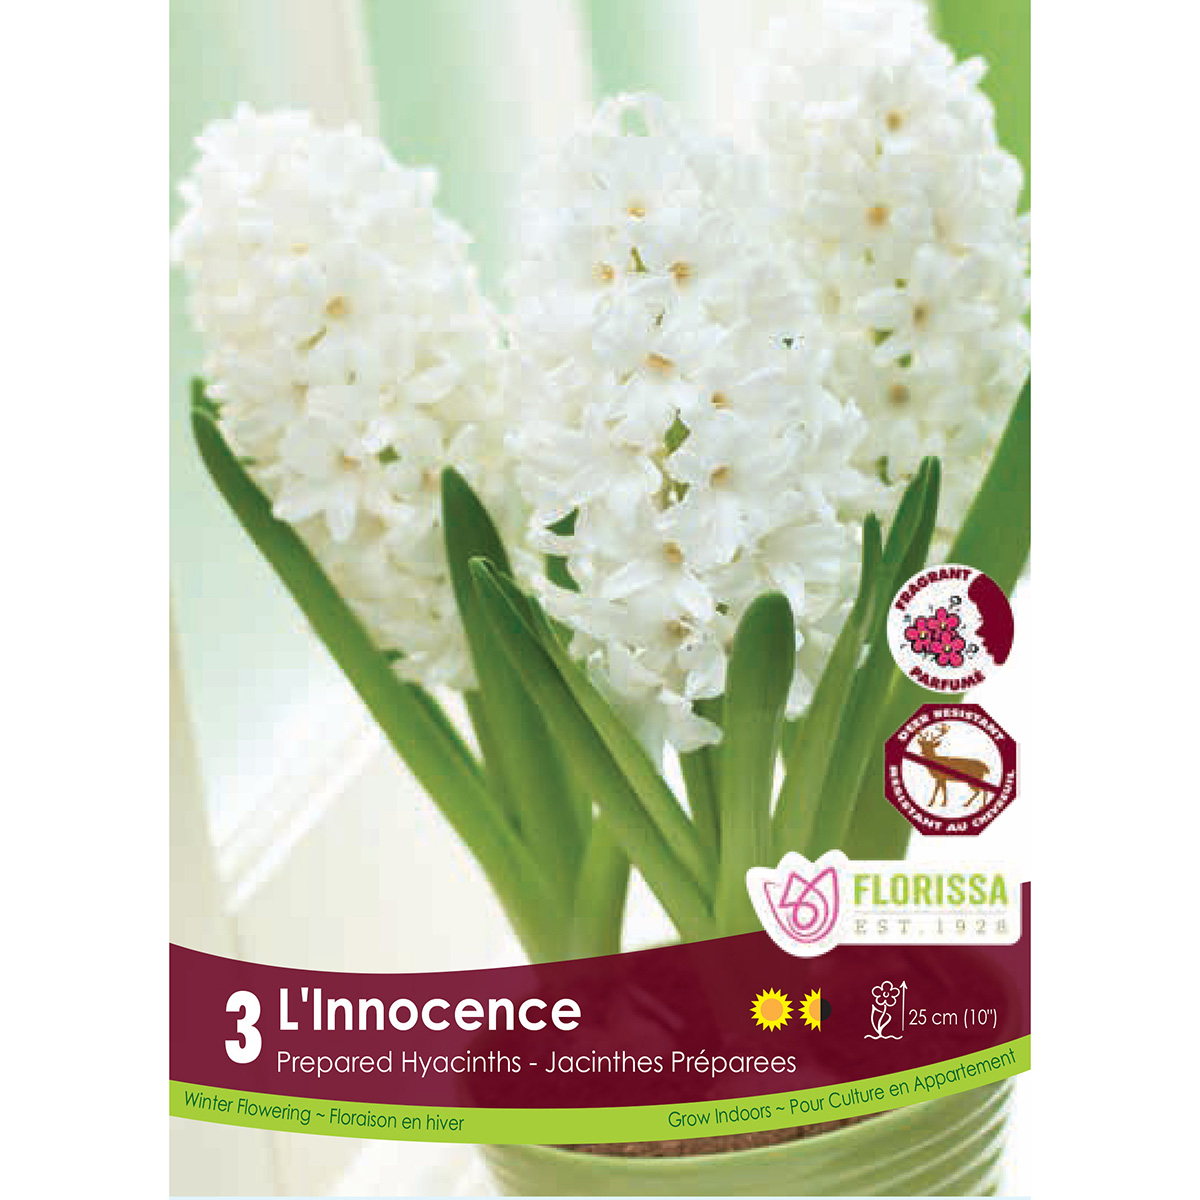 Prepared Hyacinth 'L'Innocence' Bulbs 3Pk